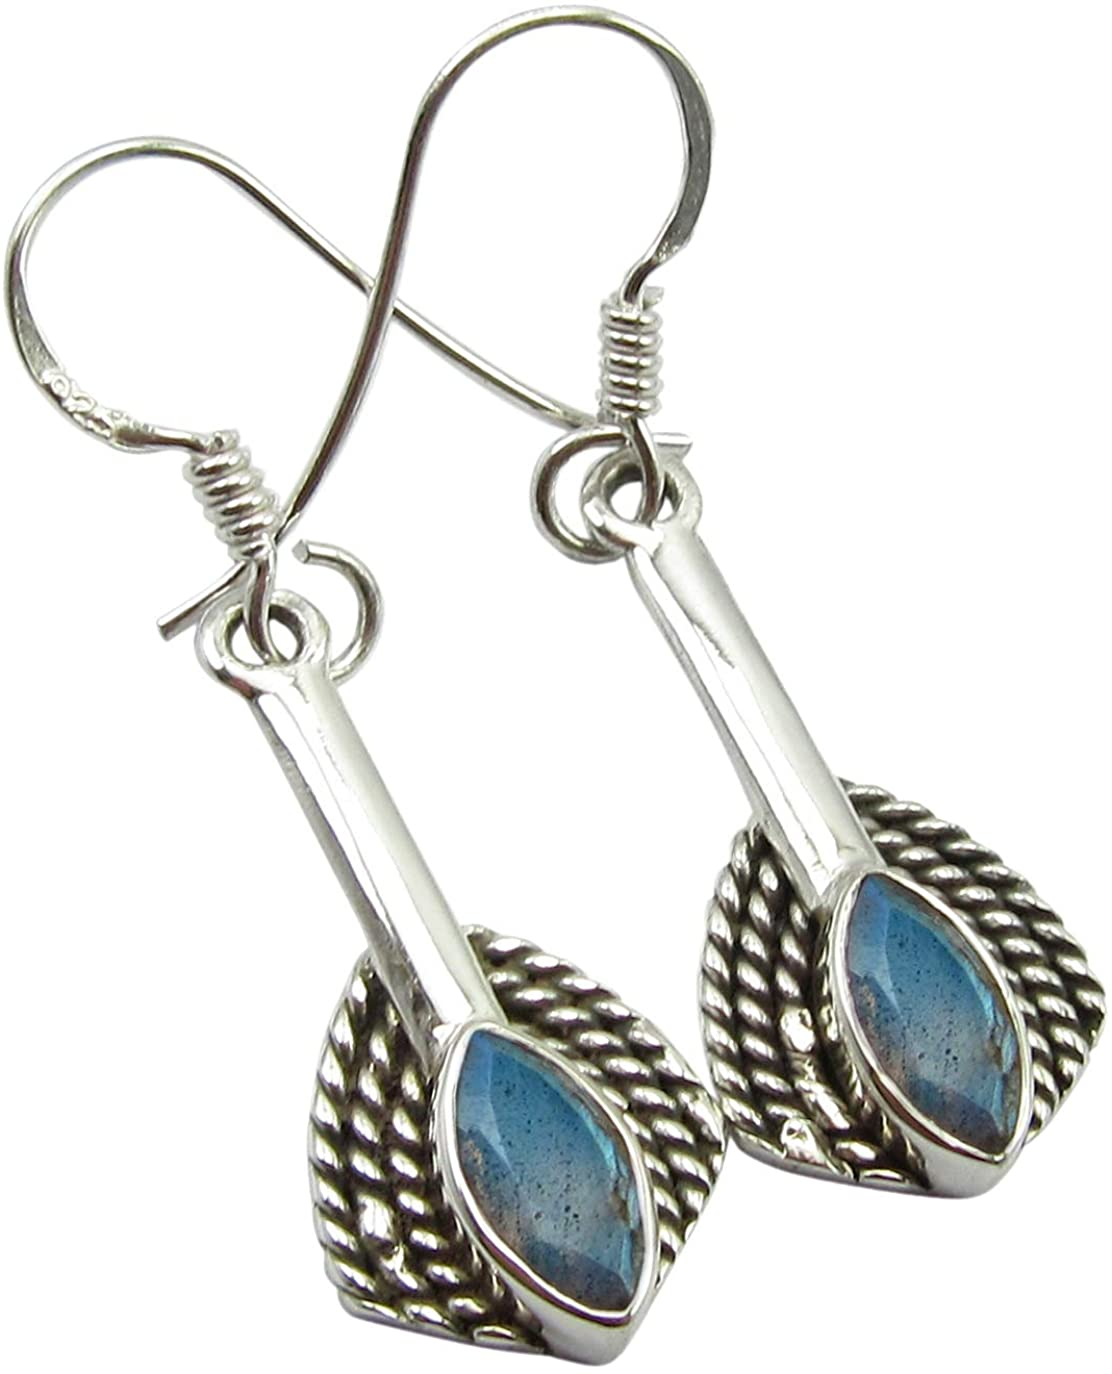 SilverStarJewel 925 Solid Sterling Silver Blue Labradorite Earrings 1.5 Stone Jewelry